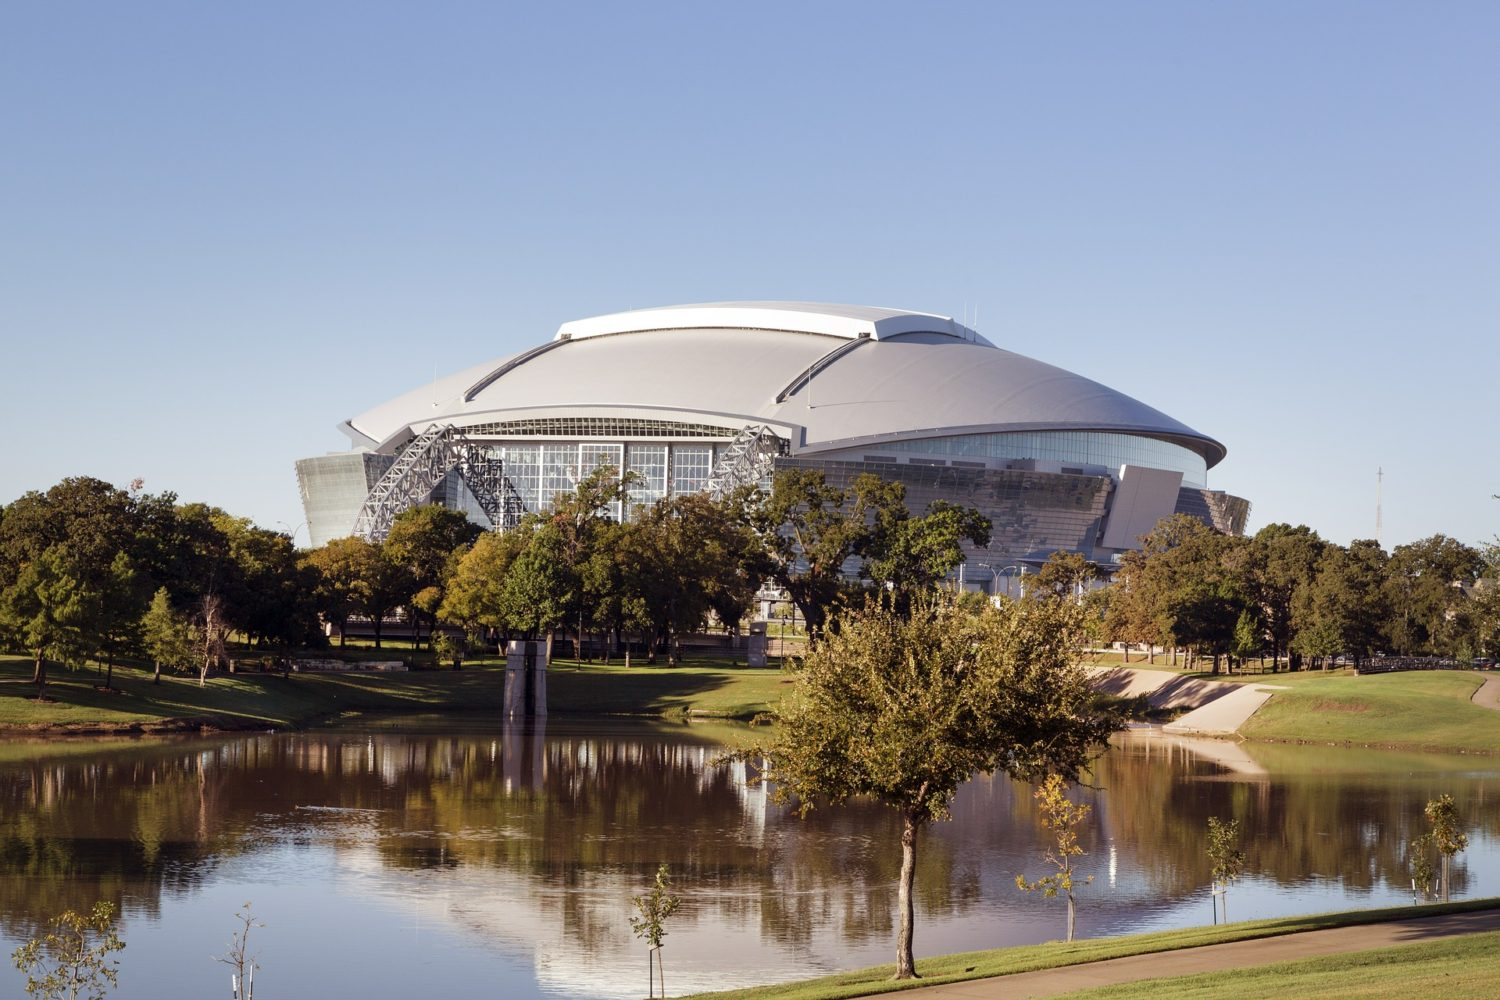 AT&T Stadium, home of the Dallas Cowboys football team